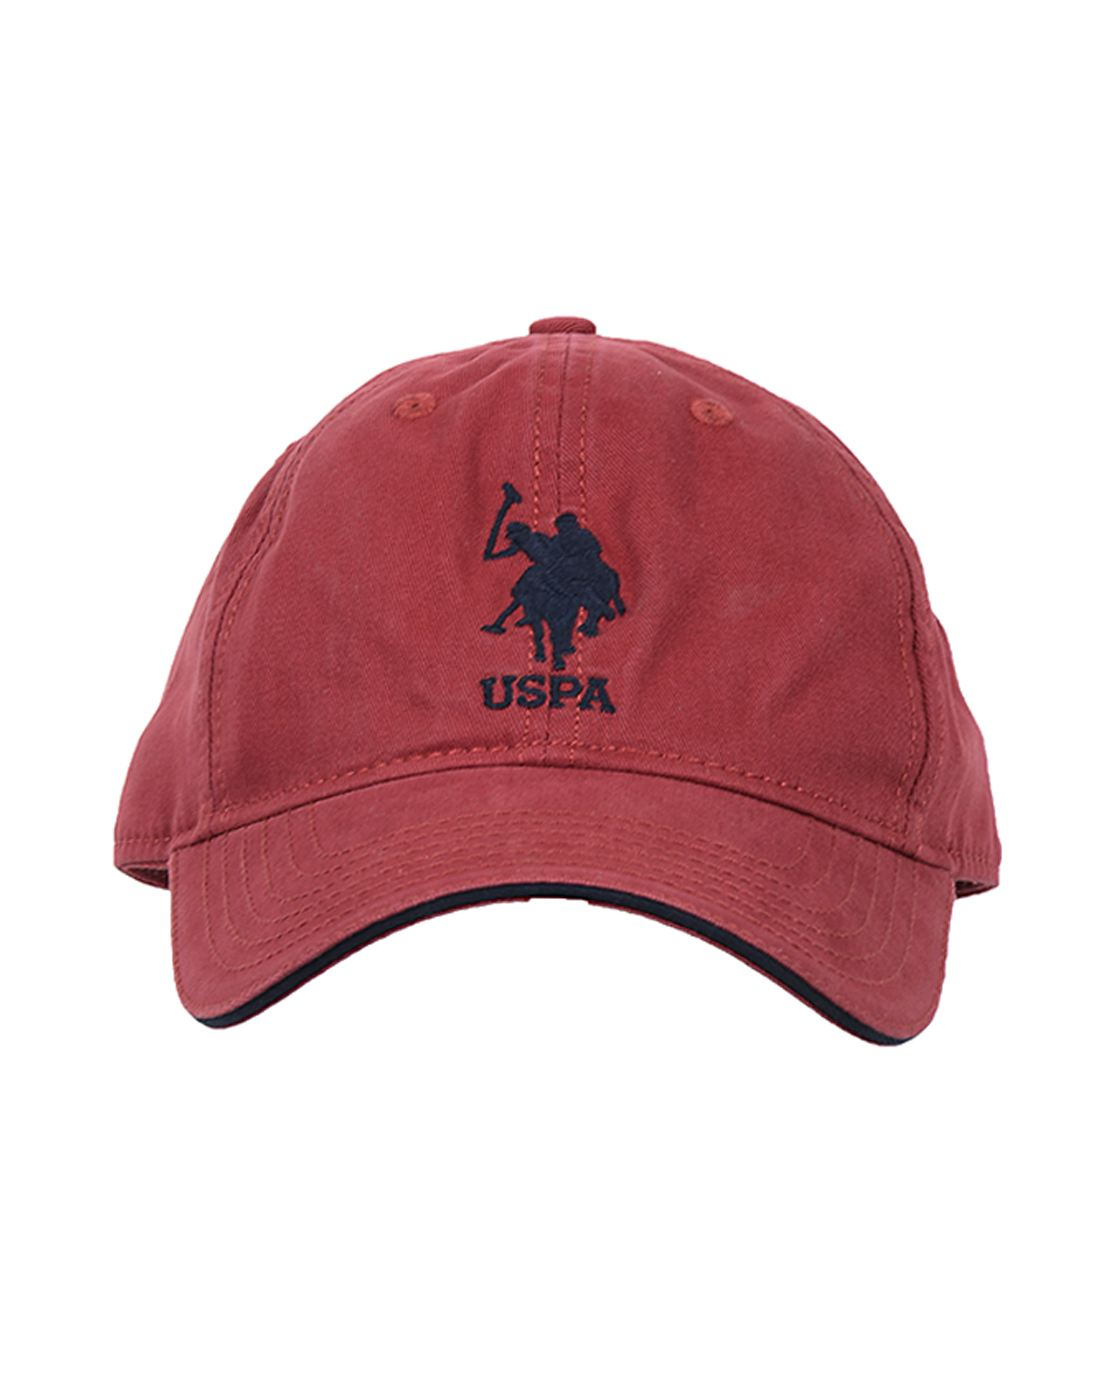 U.S.Polo Association Men Six Panel Baseball Cap